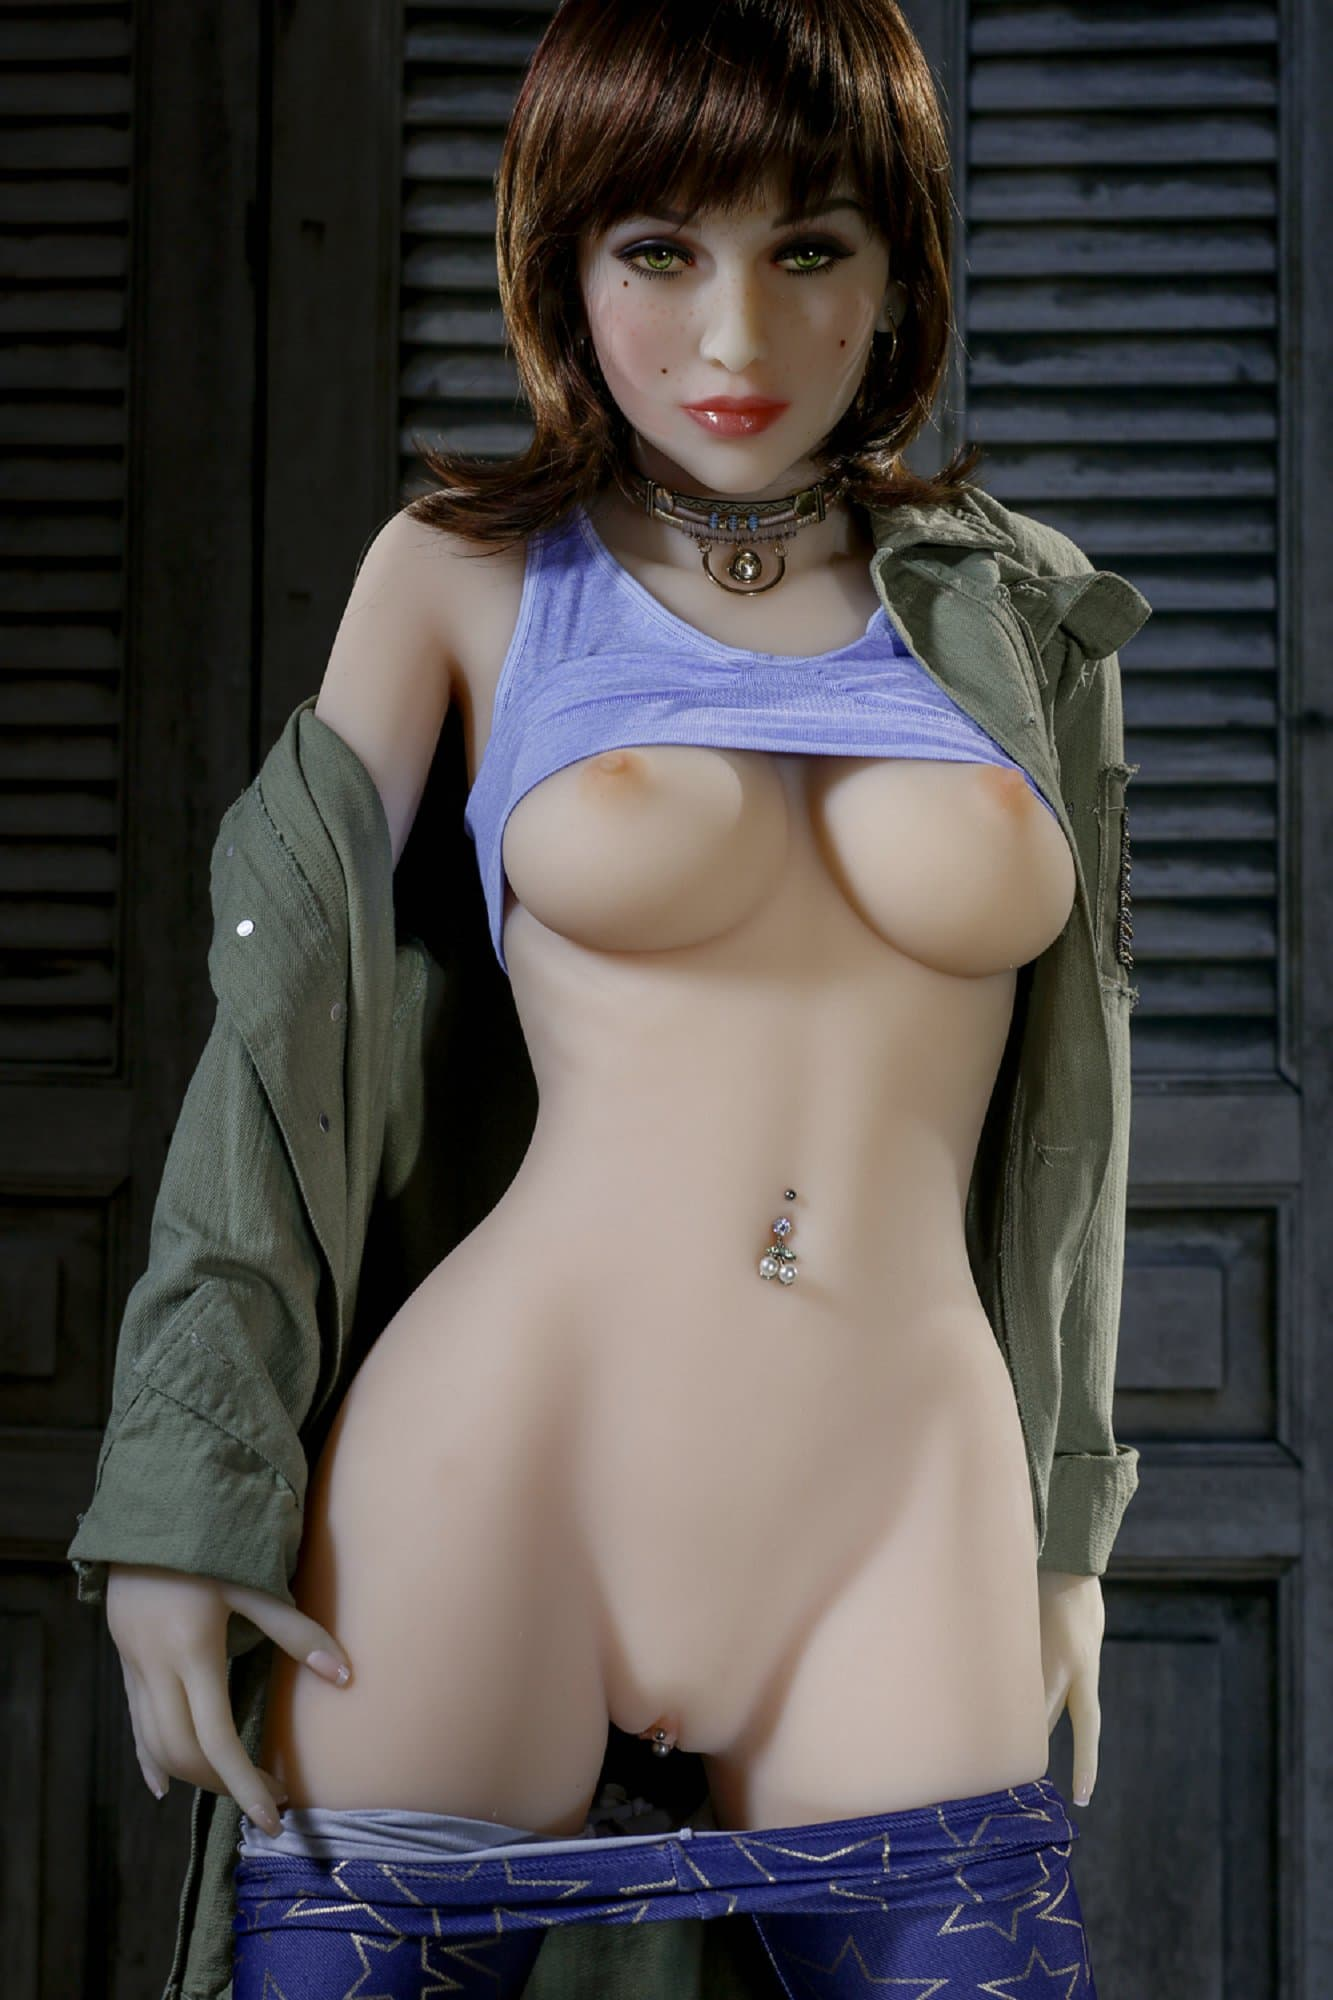 bernadette 155cm brown hair medium tits athletic tpe yl sex doll(11)